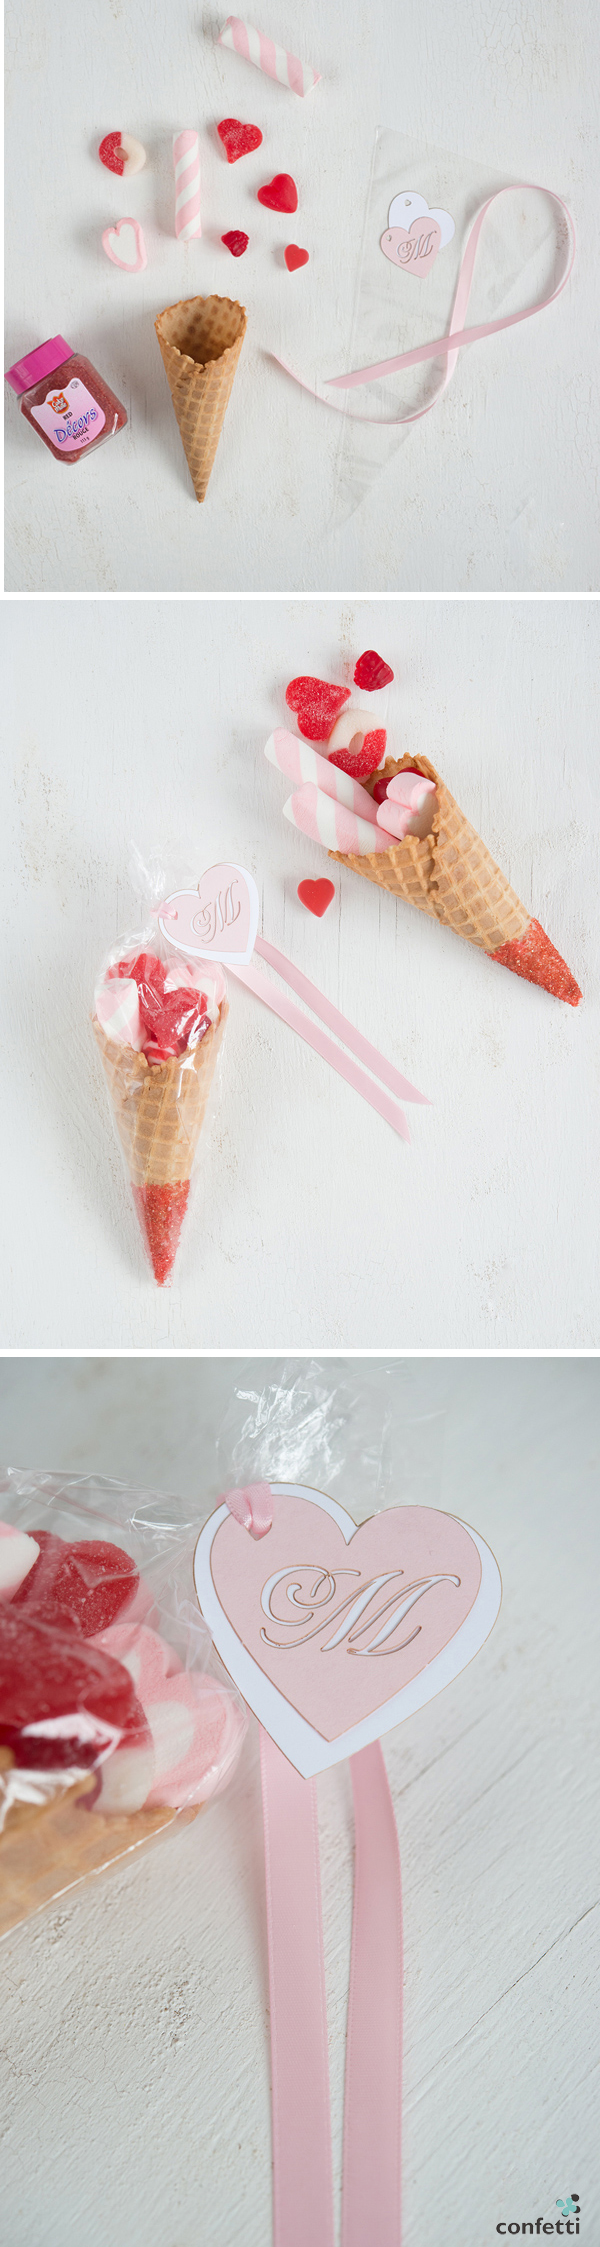 Sweet Cone Wedding favour Idea | DIY Wedding Favour Ideas | More weddig tips at Confetti.co.uk